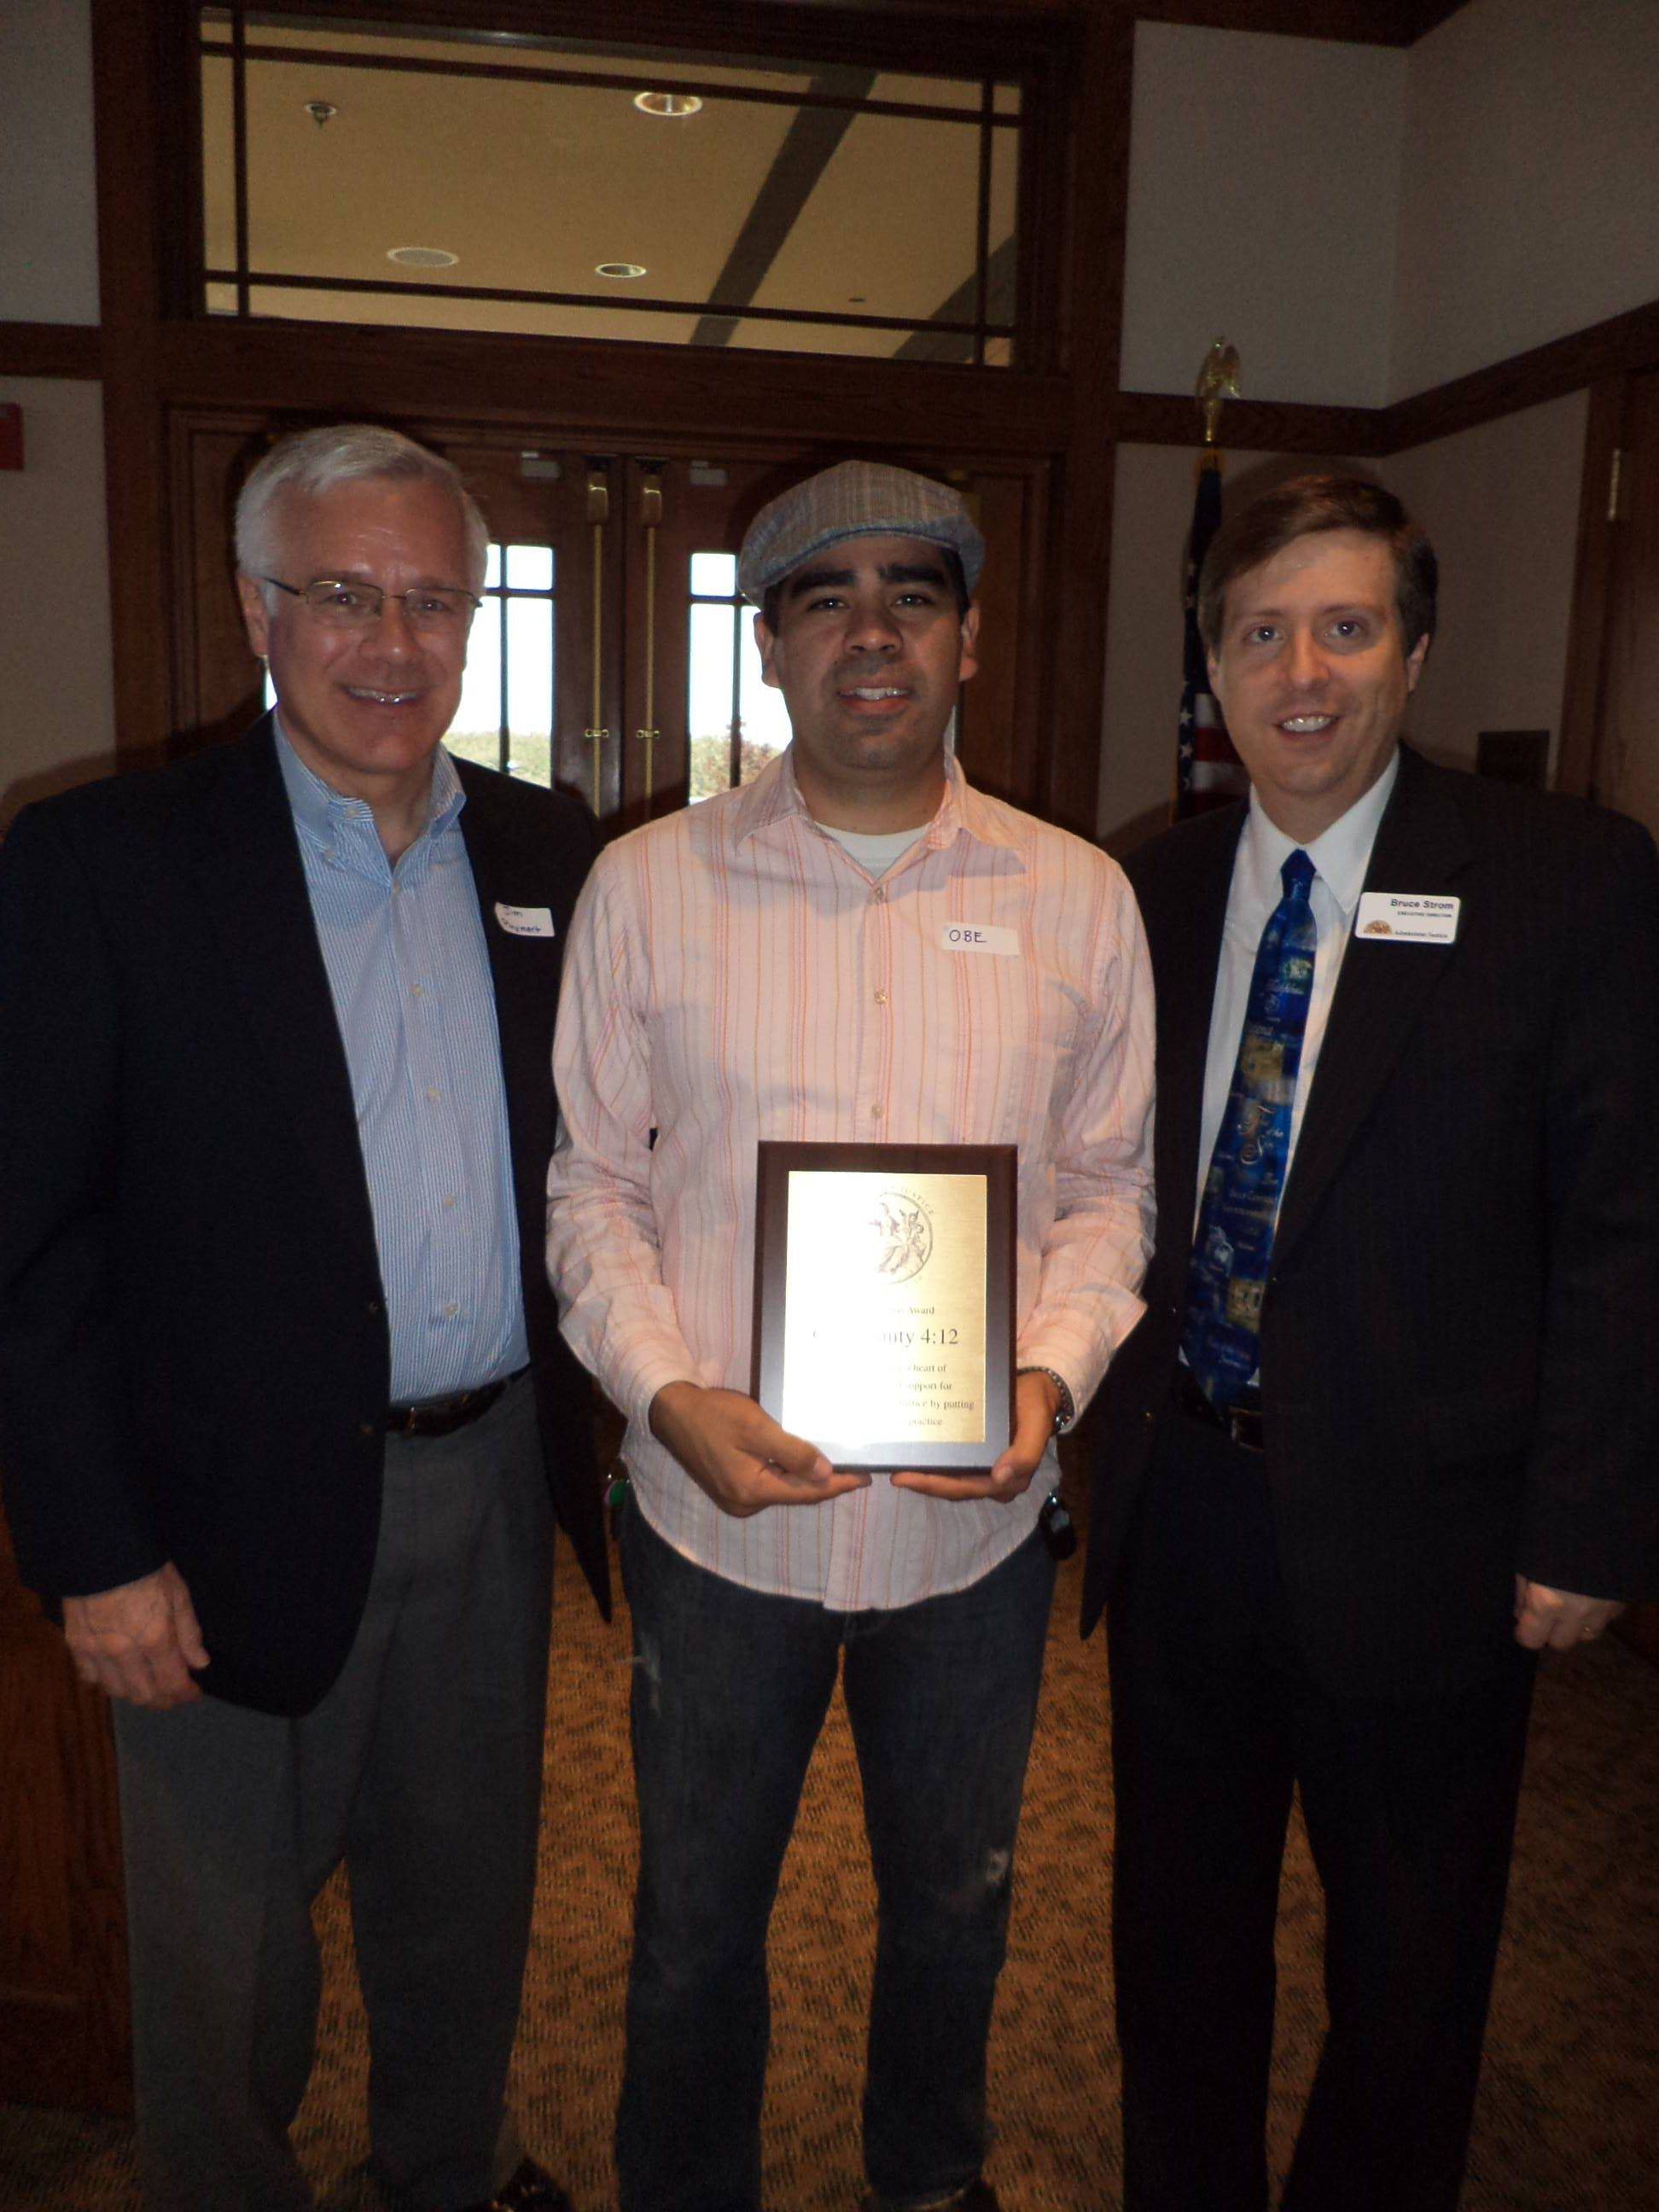 On Oct. 3, Campus Pastor Obe Arellano from Community Christian Church (center) accepts the Administer Justice Annual Barnabas Award from Board Chair Jim Pluymert, left, along with Executive Director Bruce Strom.